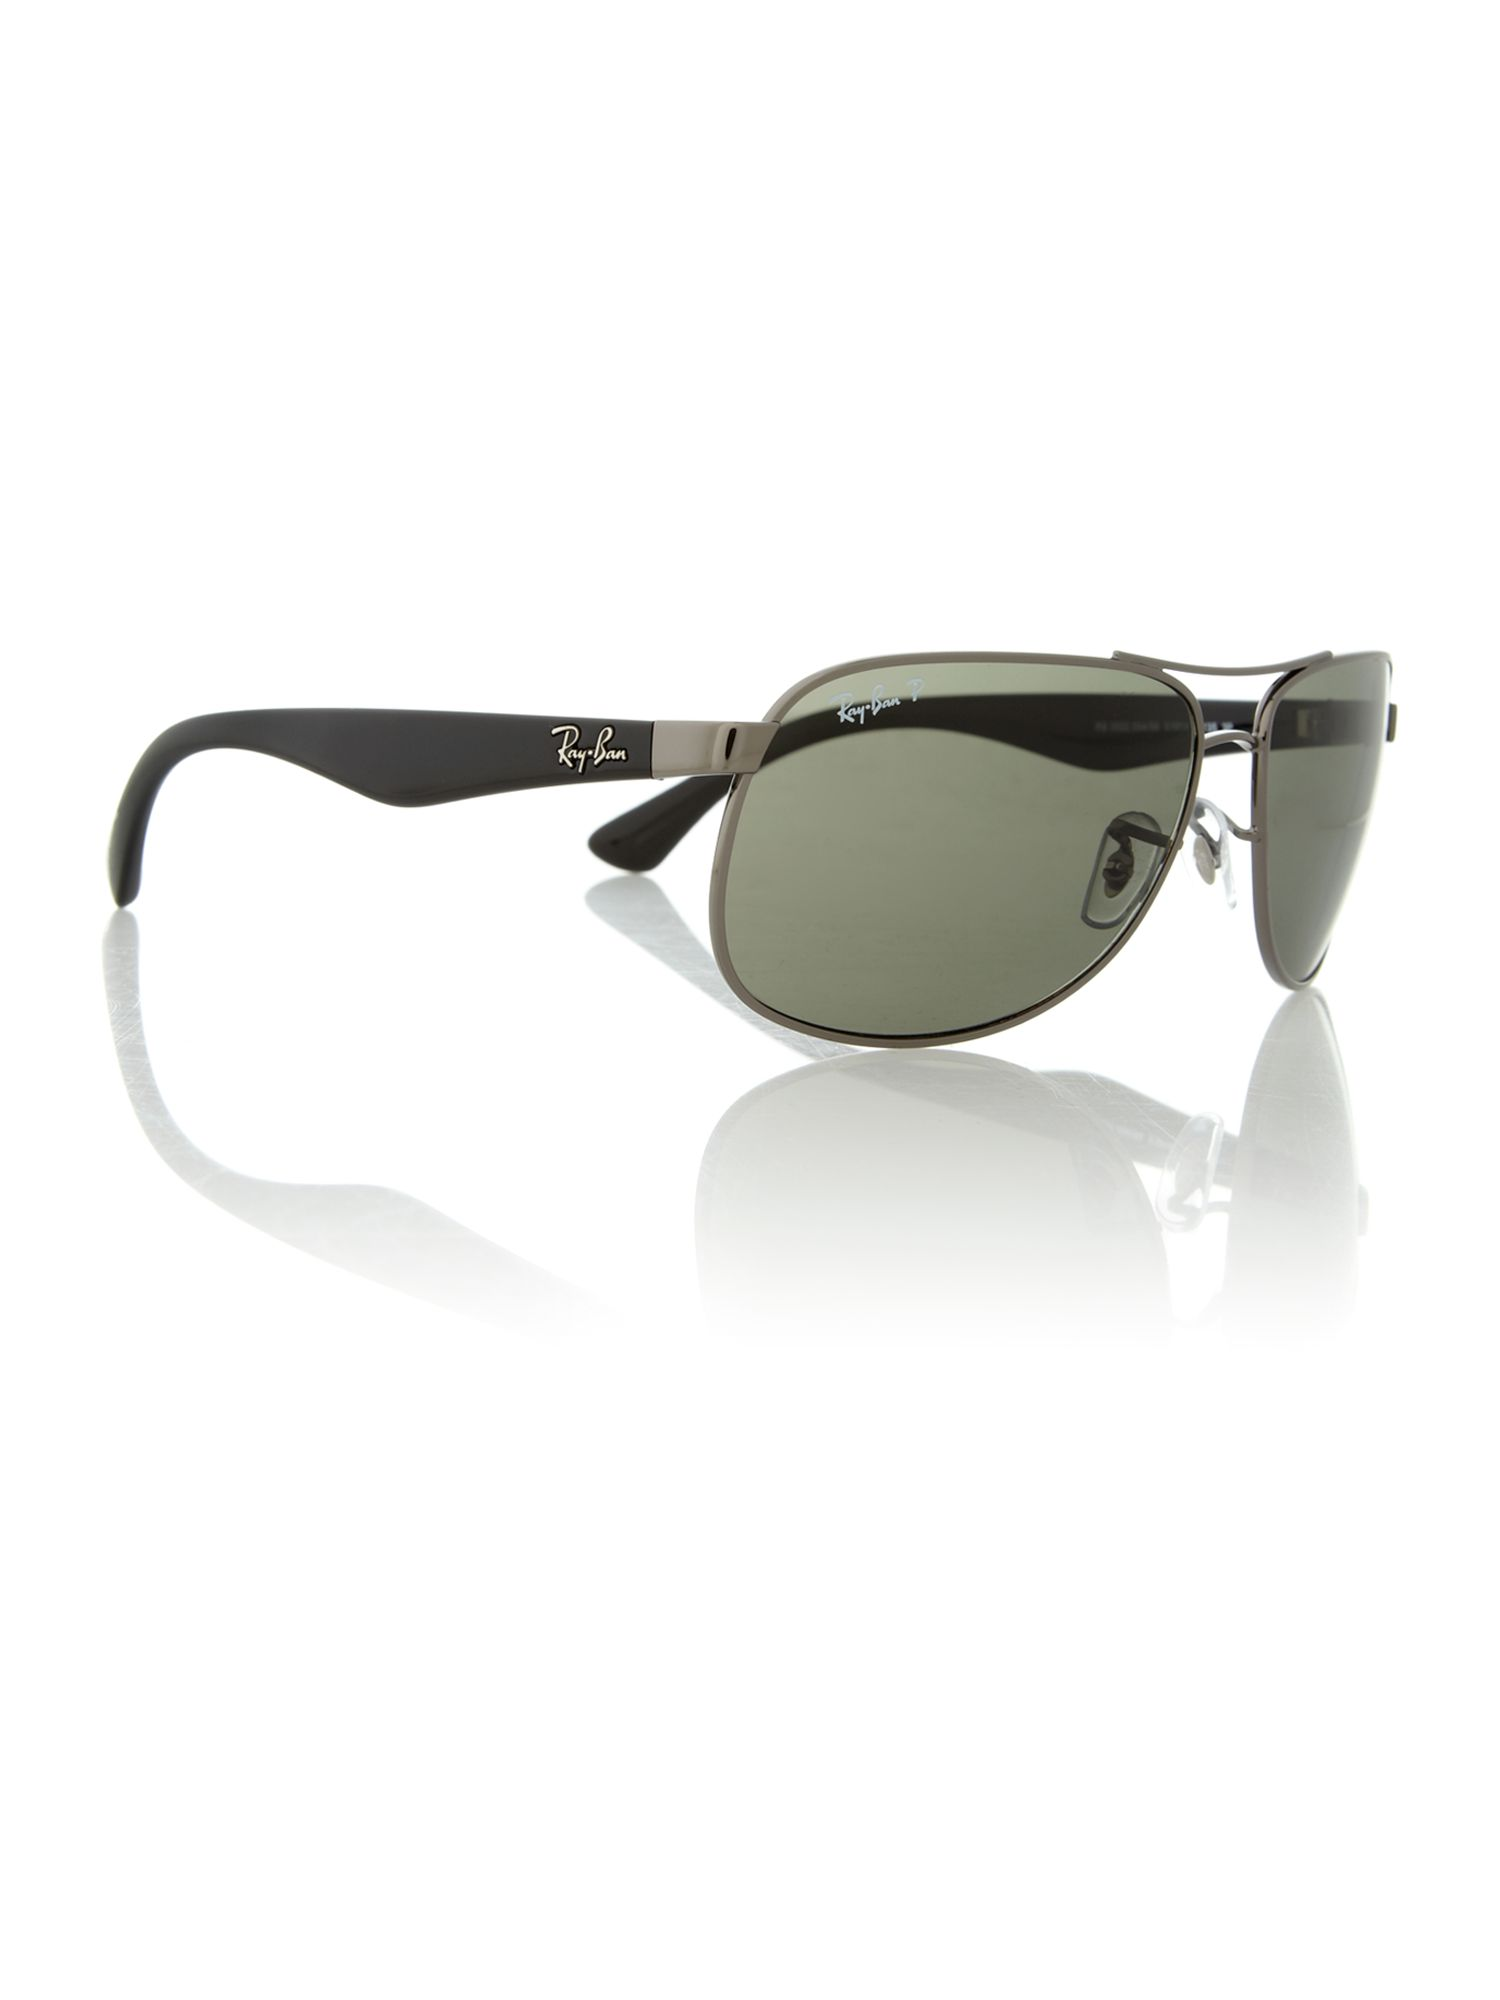 Unisex RB3502 lifestyle sunglasses